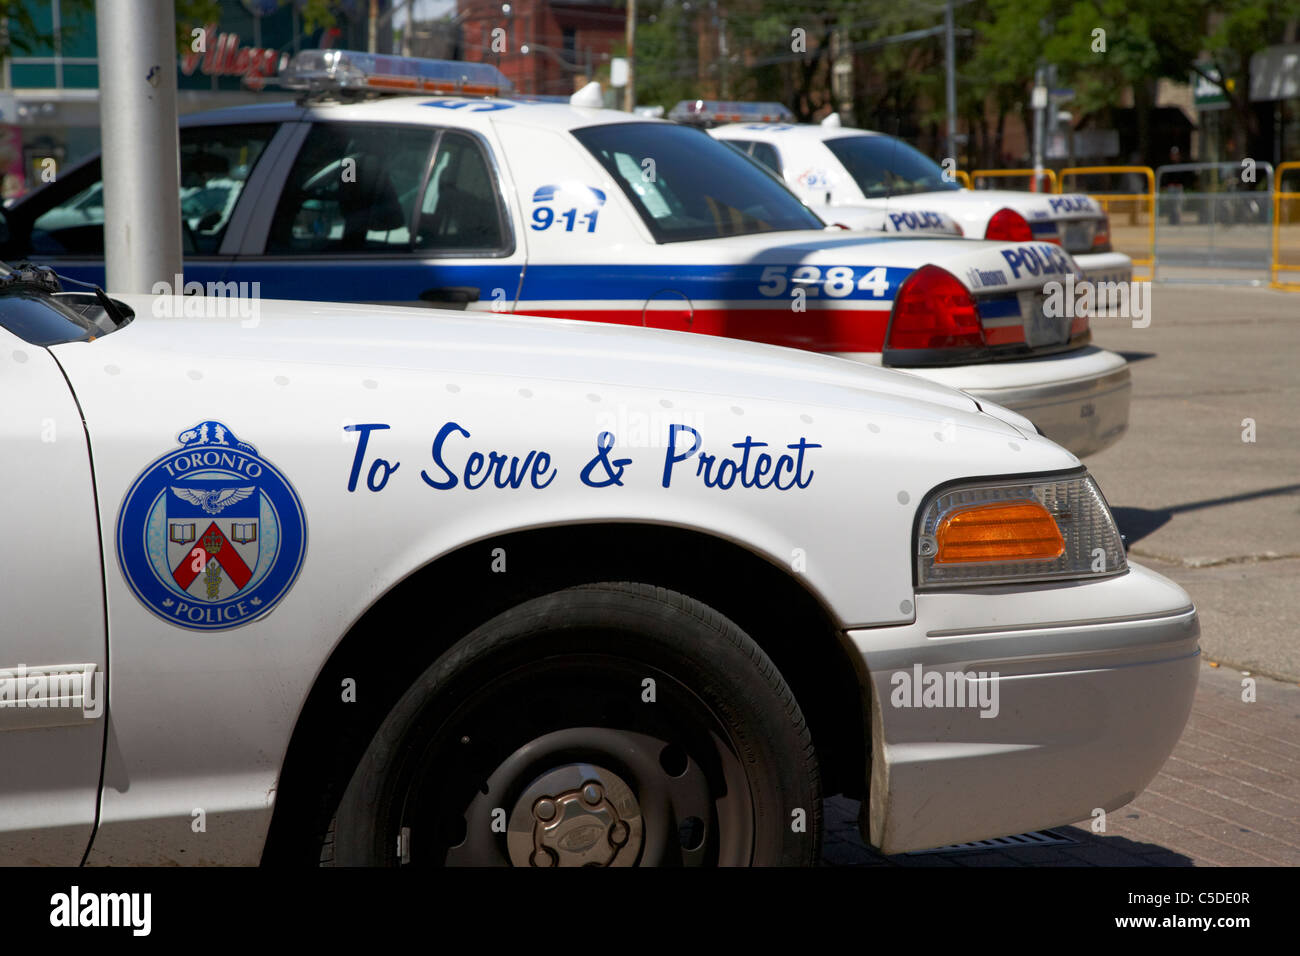 patrol cars stock photos patrol cars stock images alamy. Black Bedroom Furniture Sets. Home Design Ideas